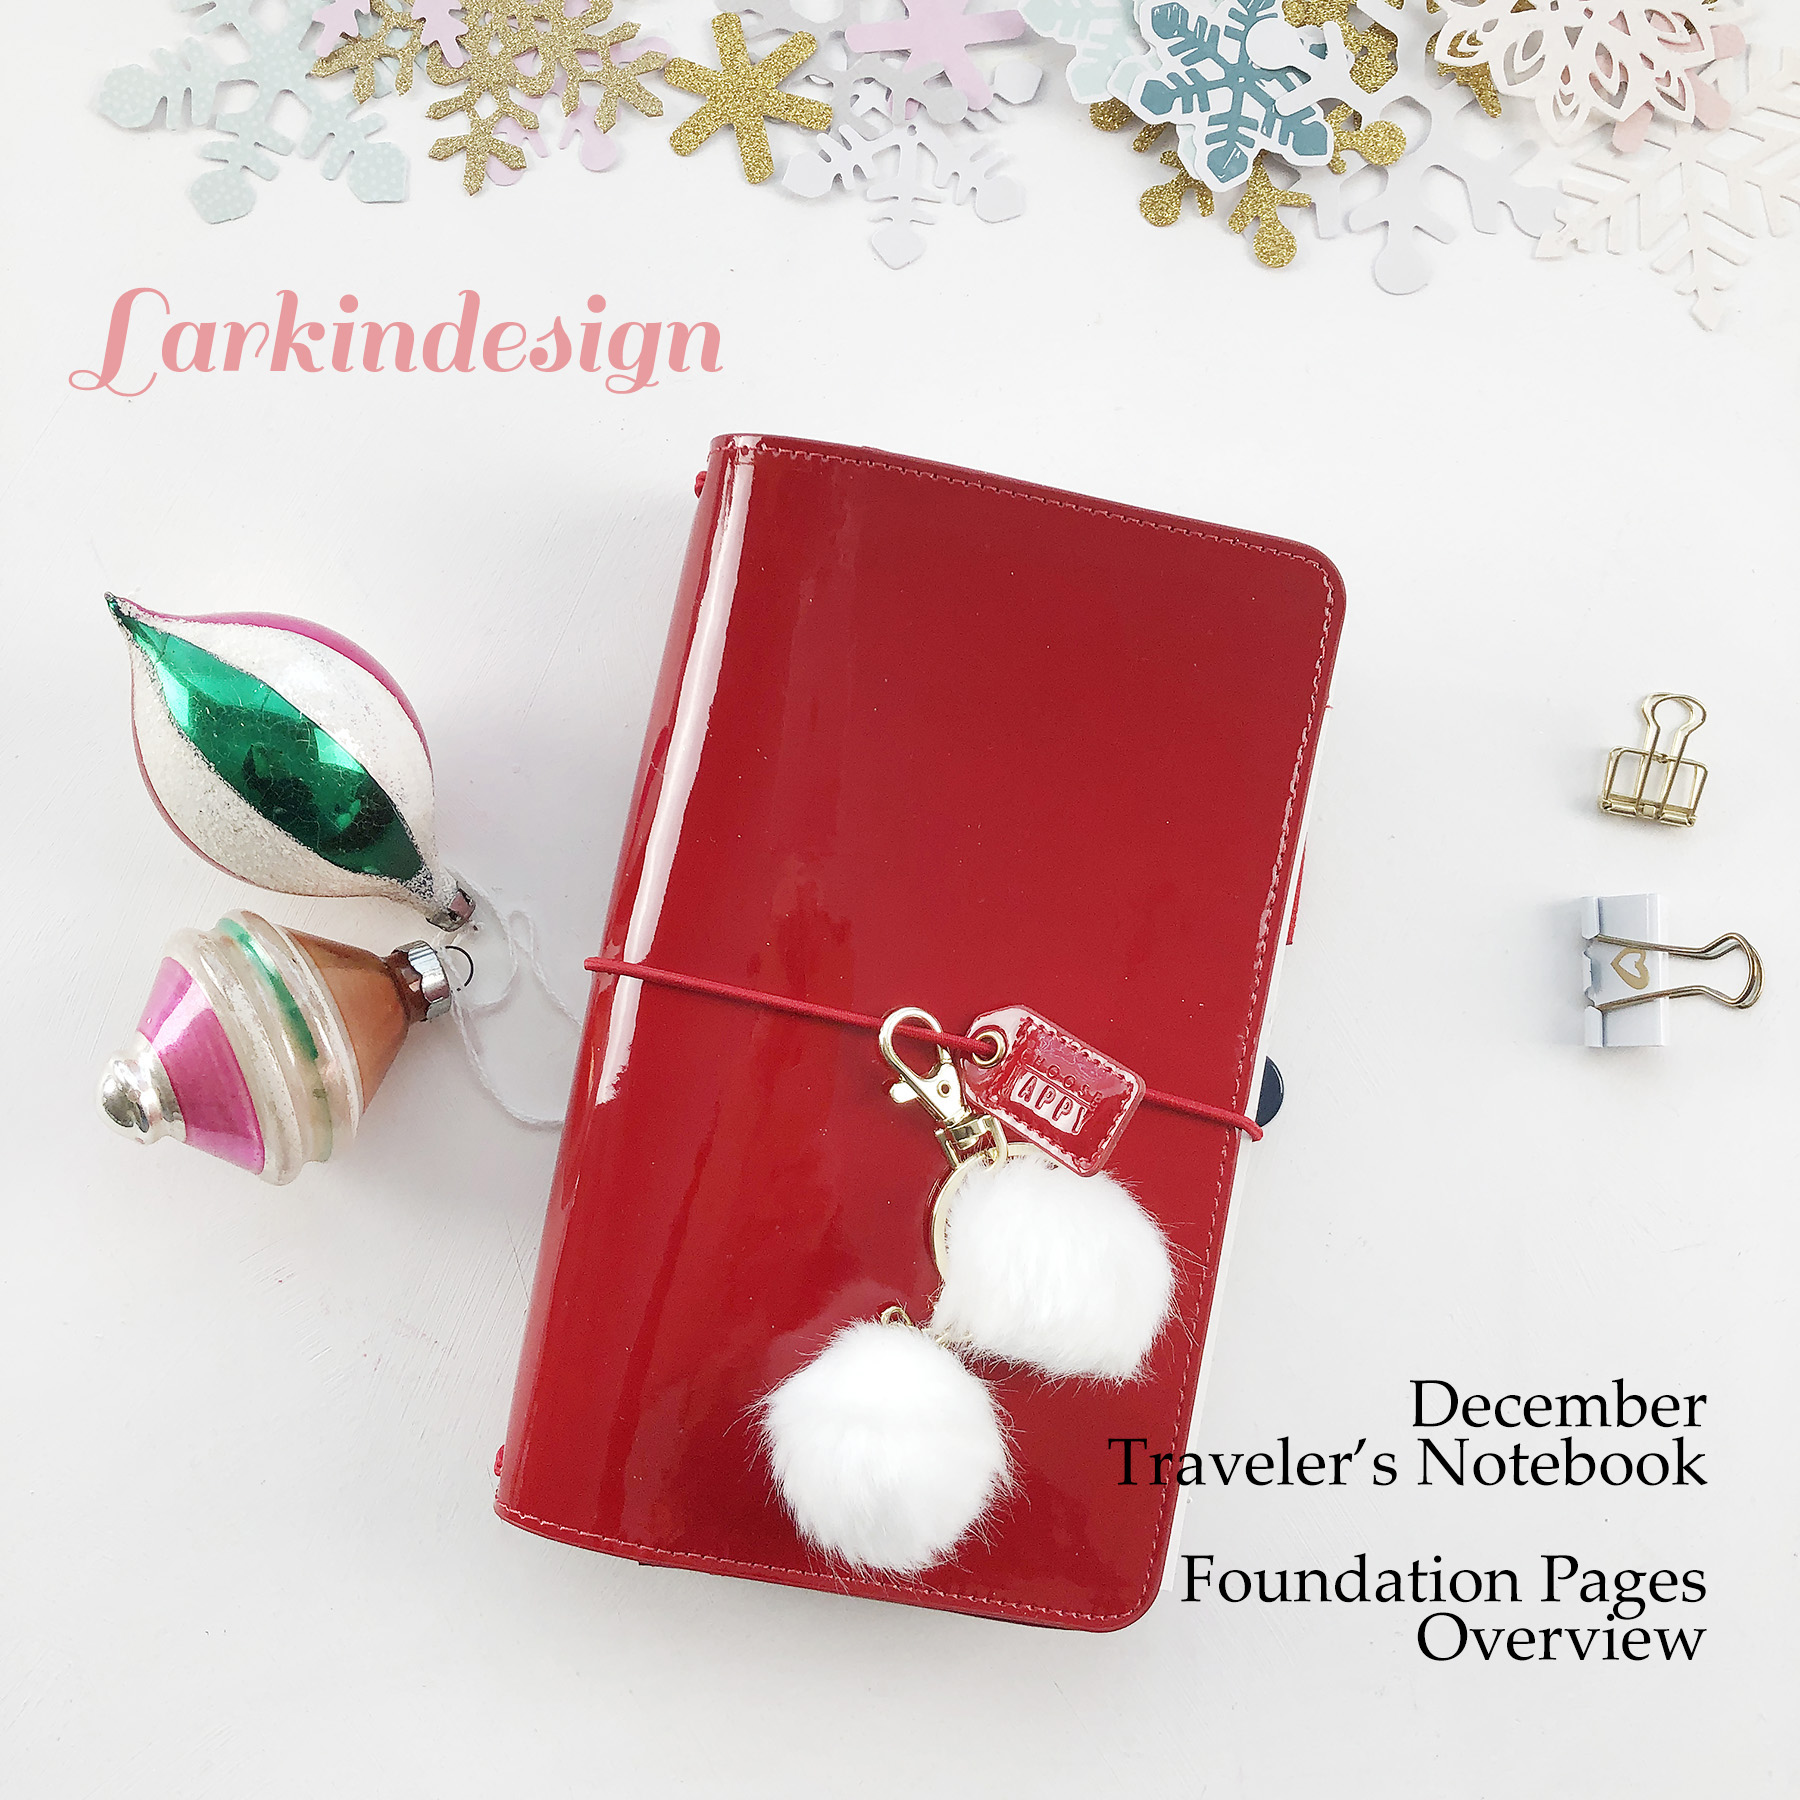 Larkindesign Documenting December In A Traveler's Notebook 2018 | Foundation Pages RoundUp